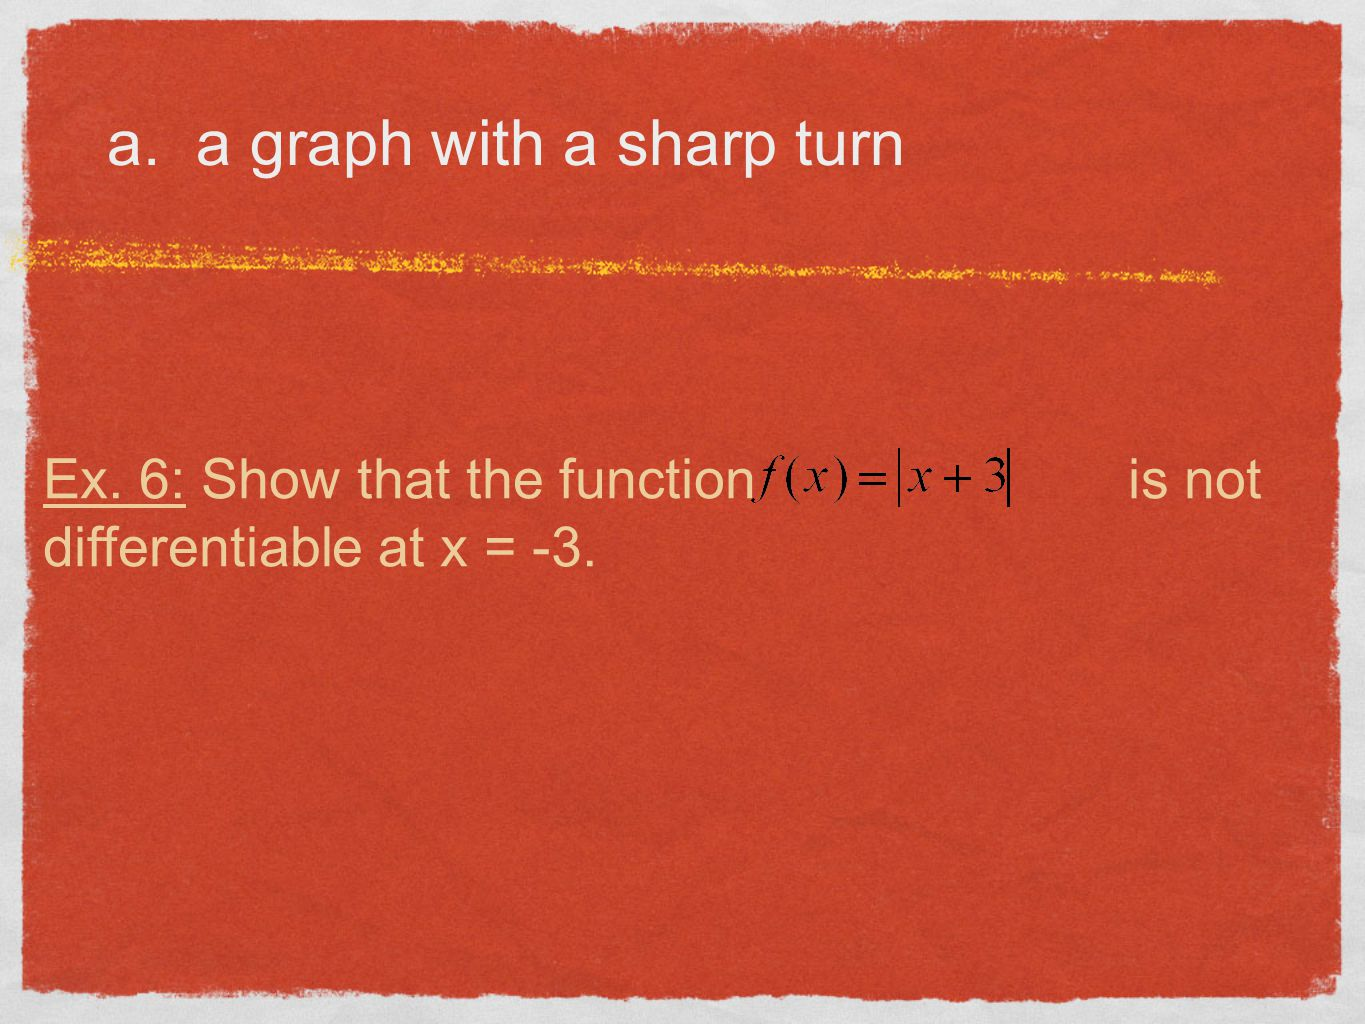 a. a graph with a sharp turn Ex. 6: Show that the function is not differentiable at x = -3.